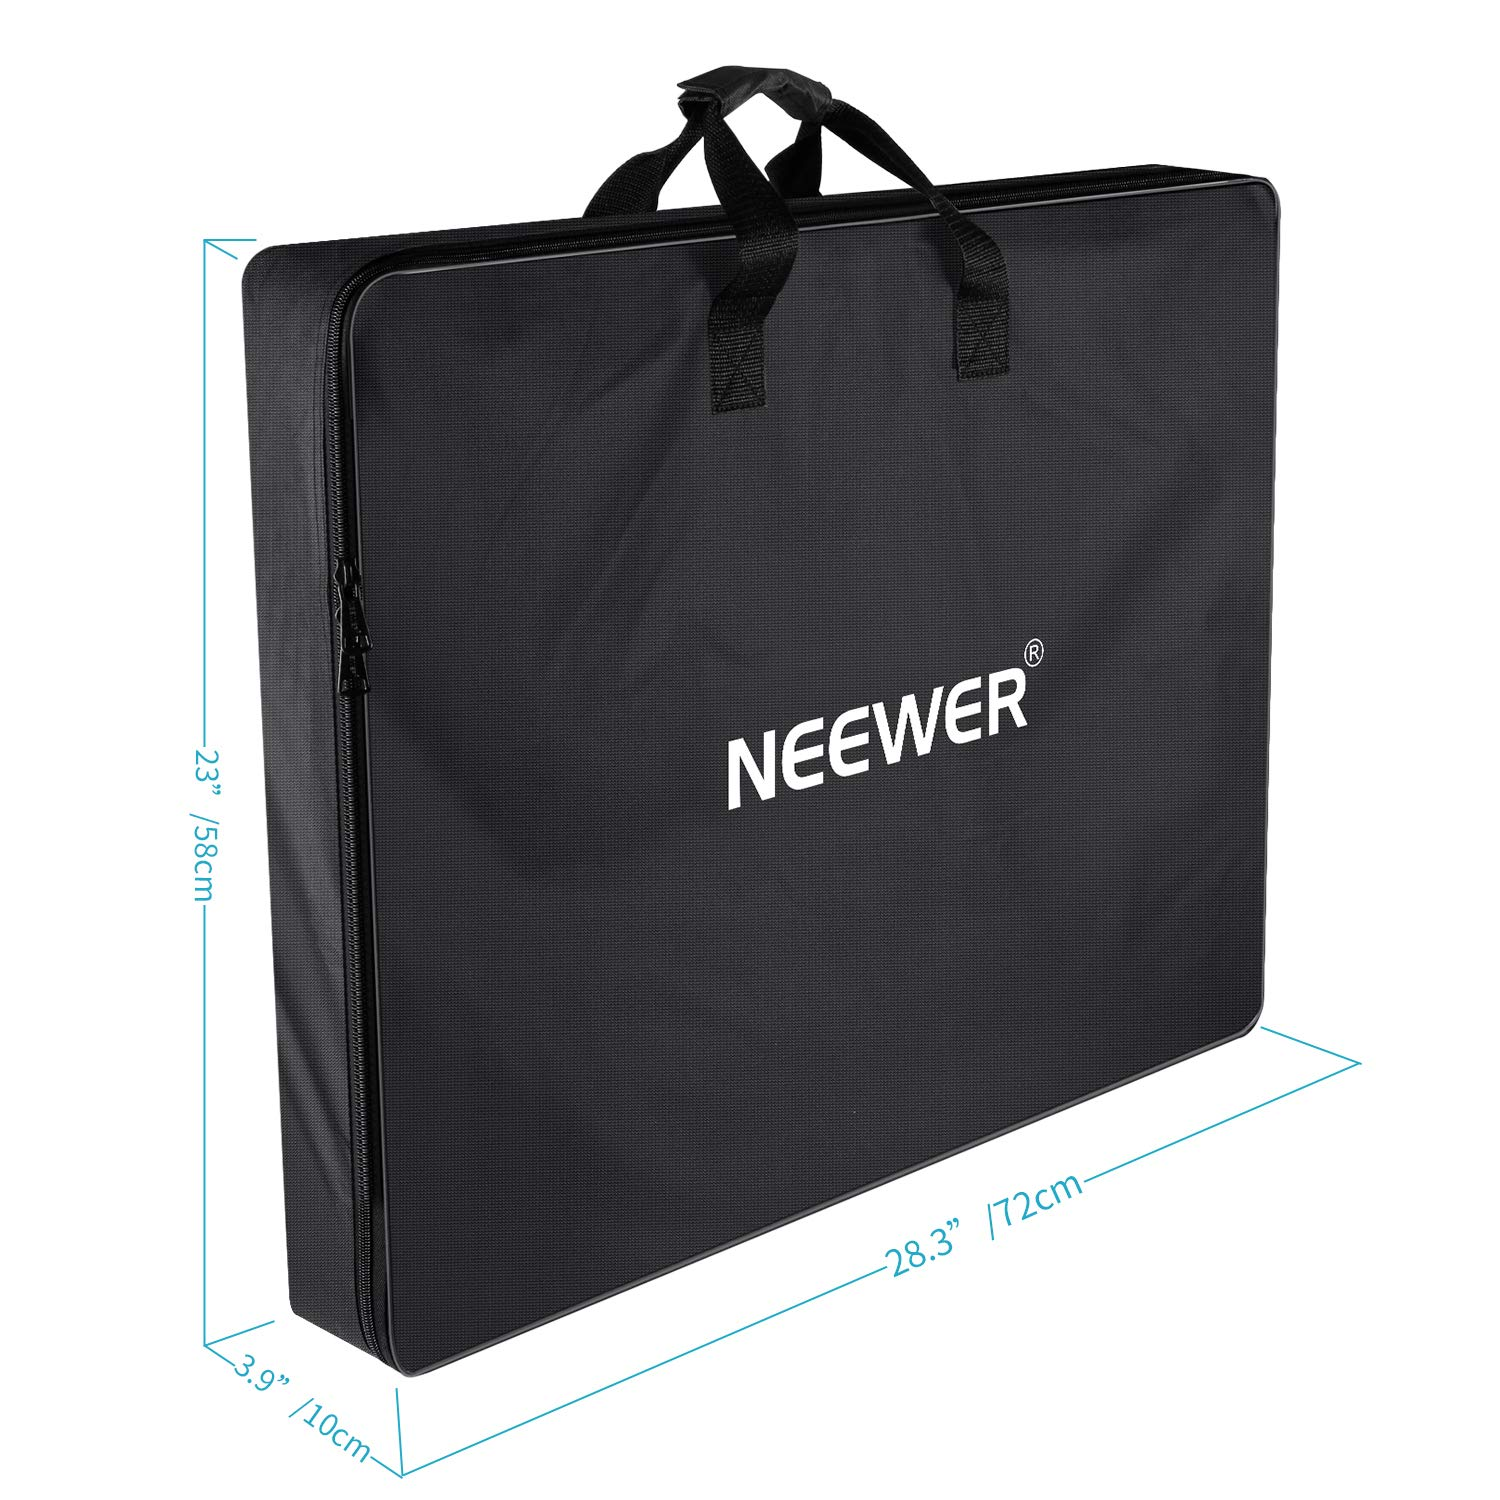 Neewer Enlarged Carrying Bag for 18 inches Ring Light, Light Stand, Accessories - 29.5x23.6 inches/75x60 Centimeters Protective Case, Durable Nylon,Light Weight (Black) by Neewer (Image #3)